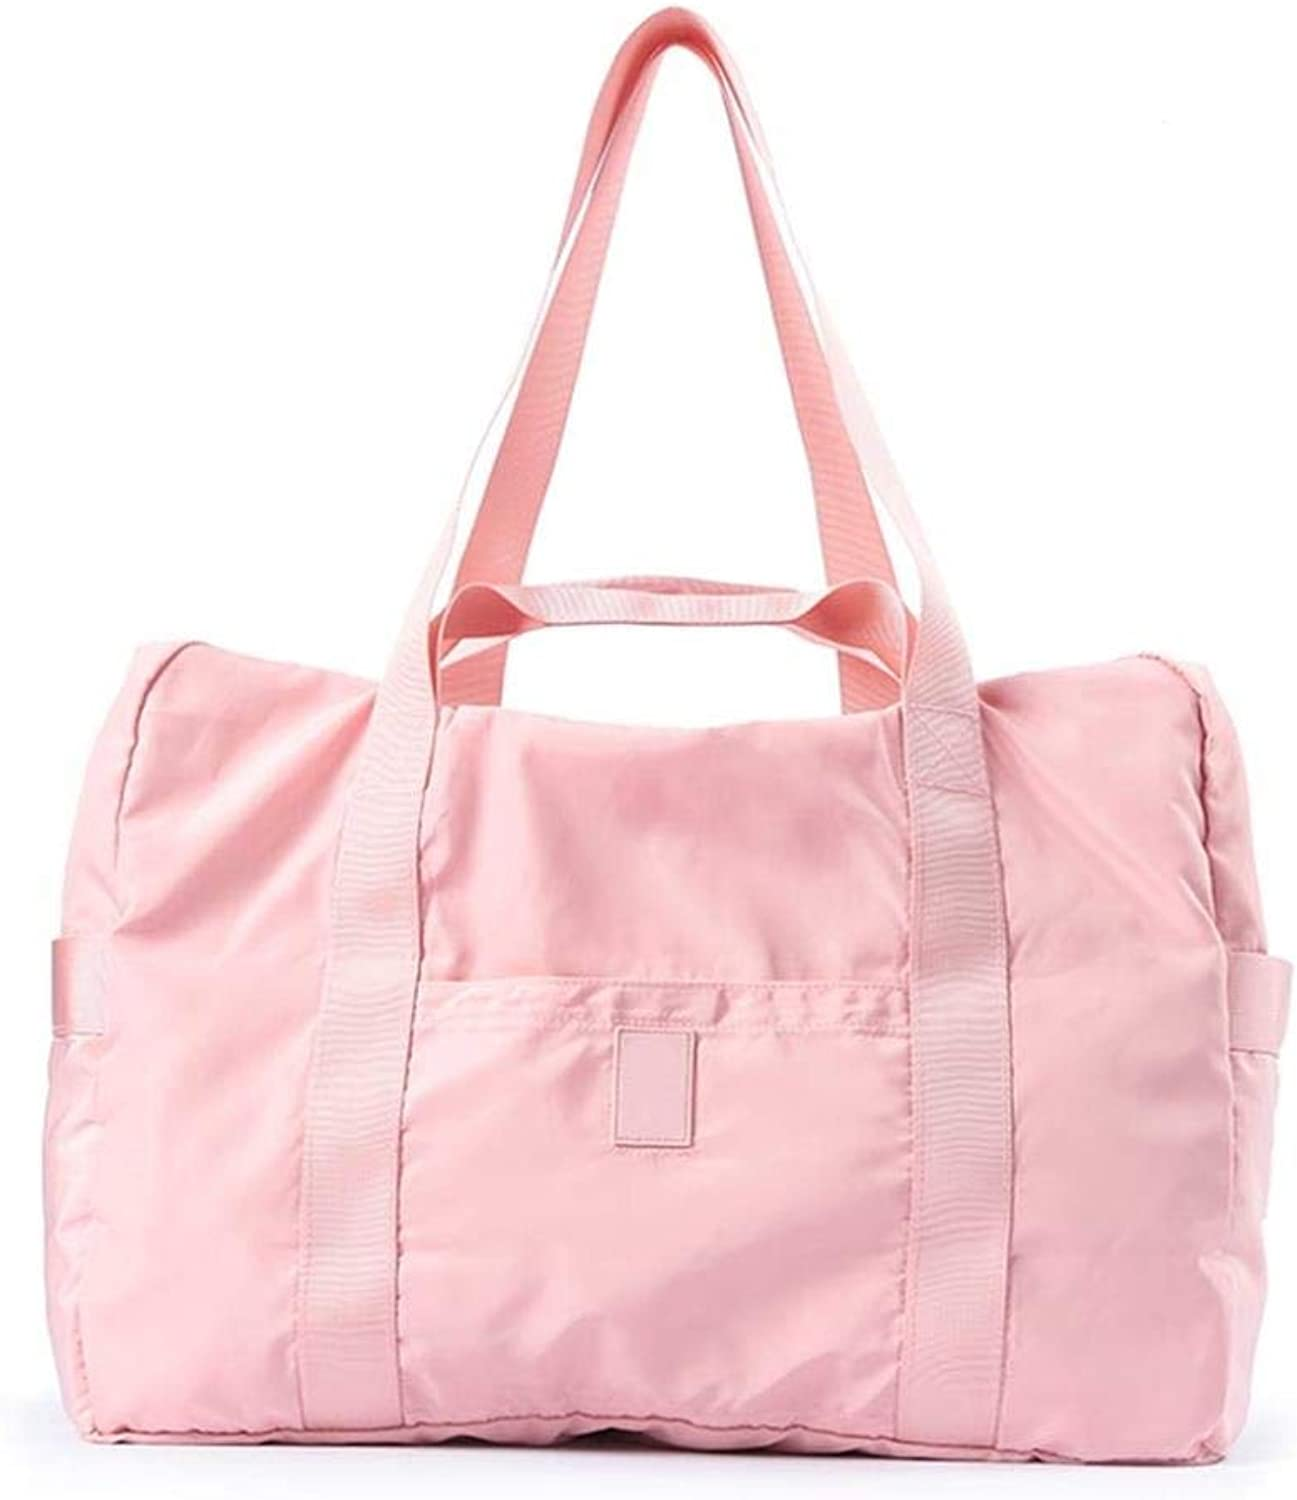 Women's Tote Large Capacity Canvas Portable Travel for Weekends and Business Trips, Short Trips, Long Trips